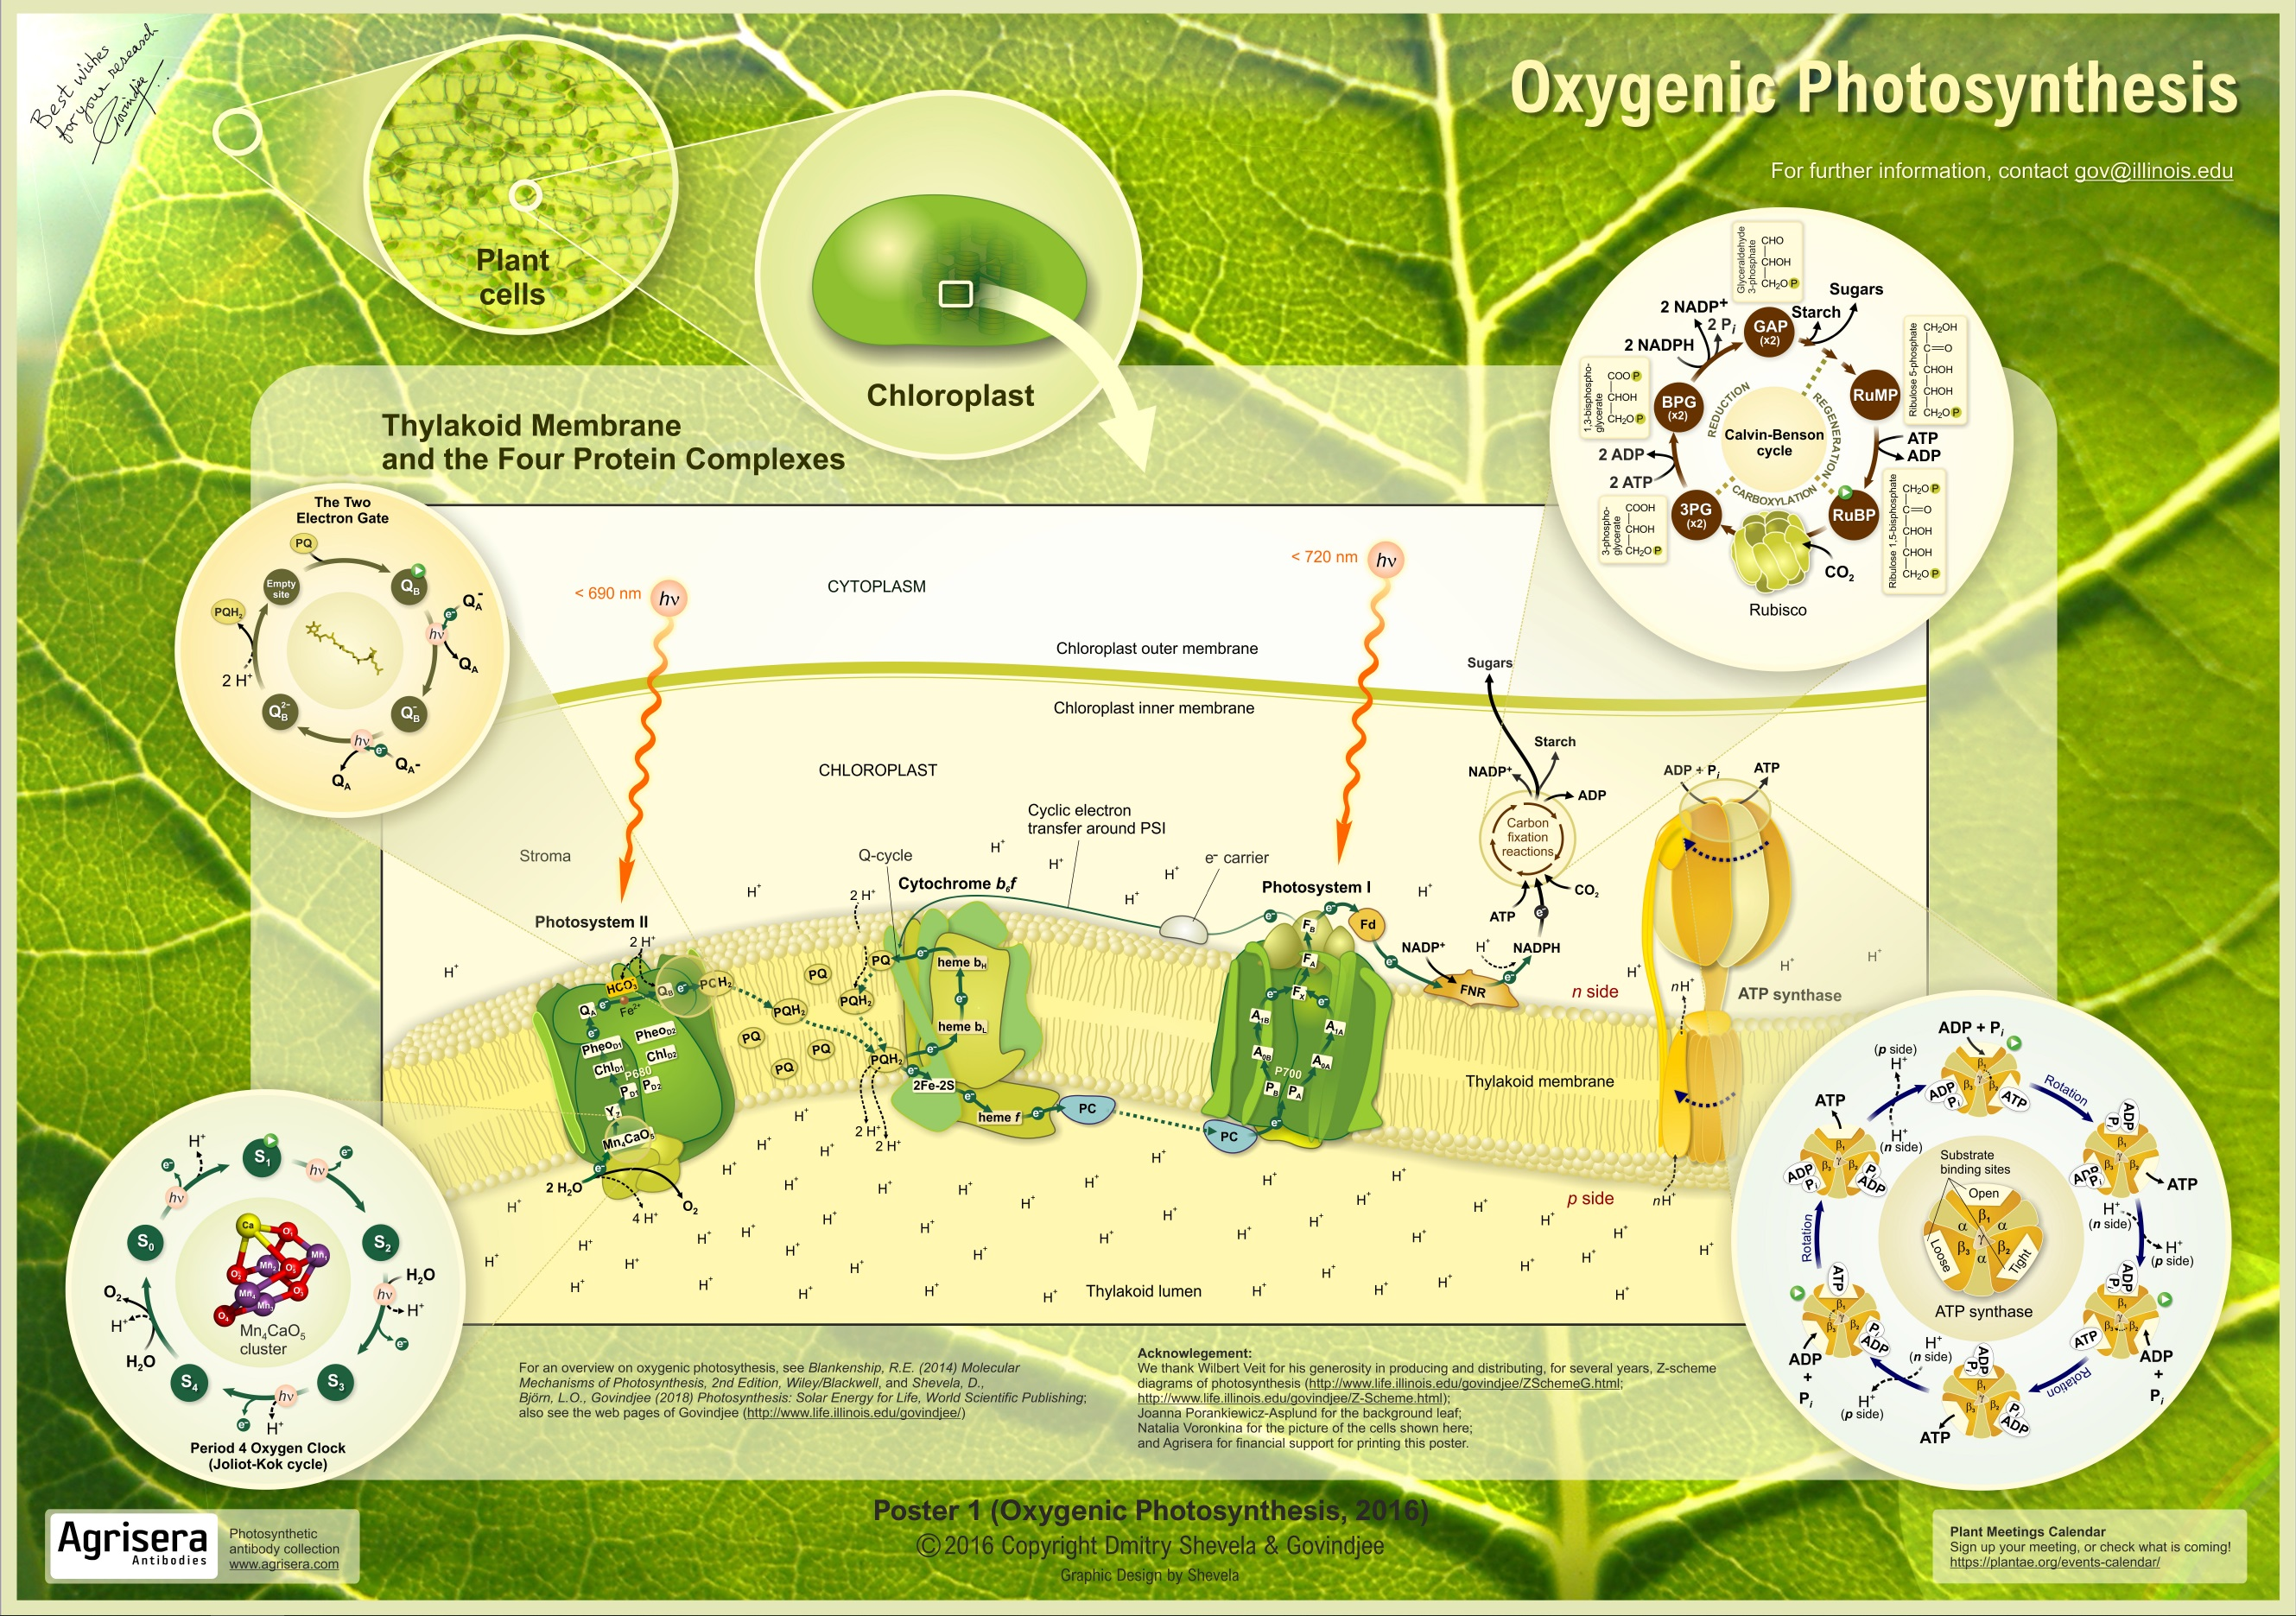 Oxygenetic Photosynthesis